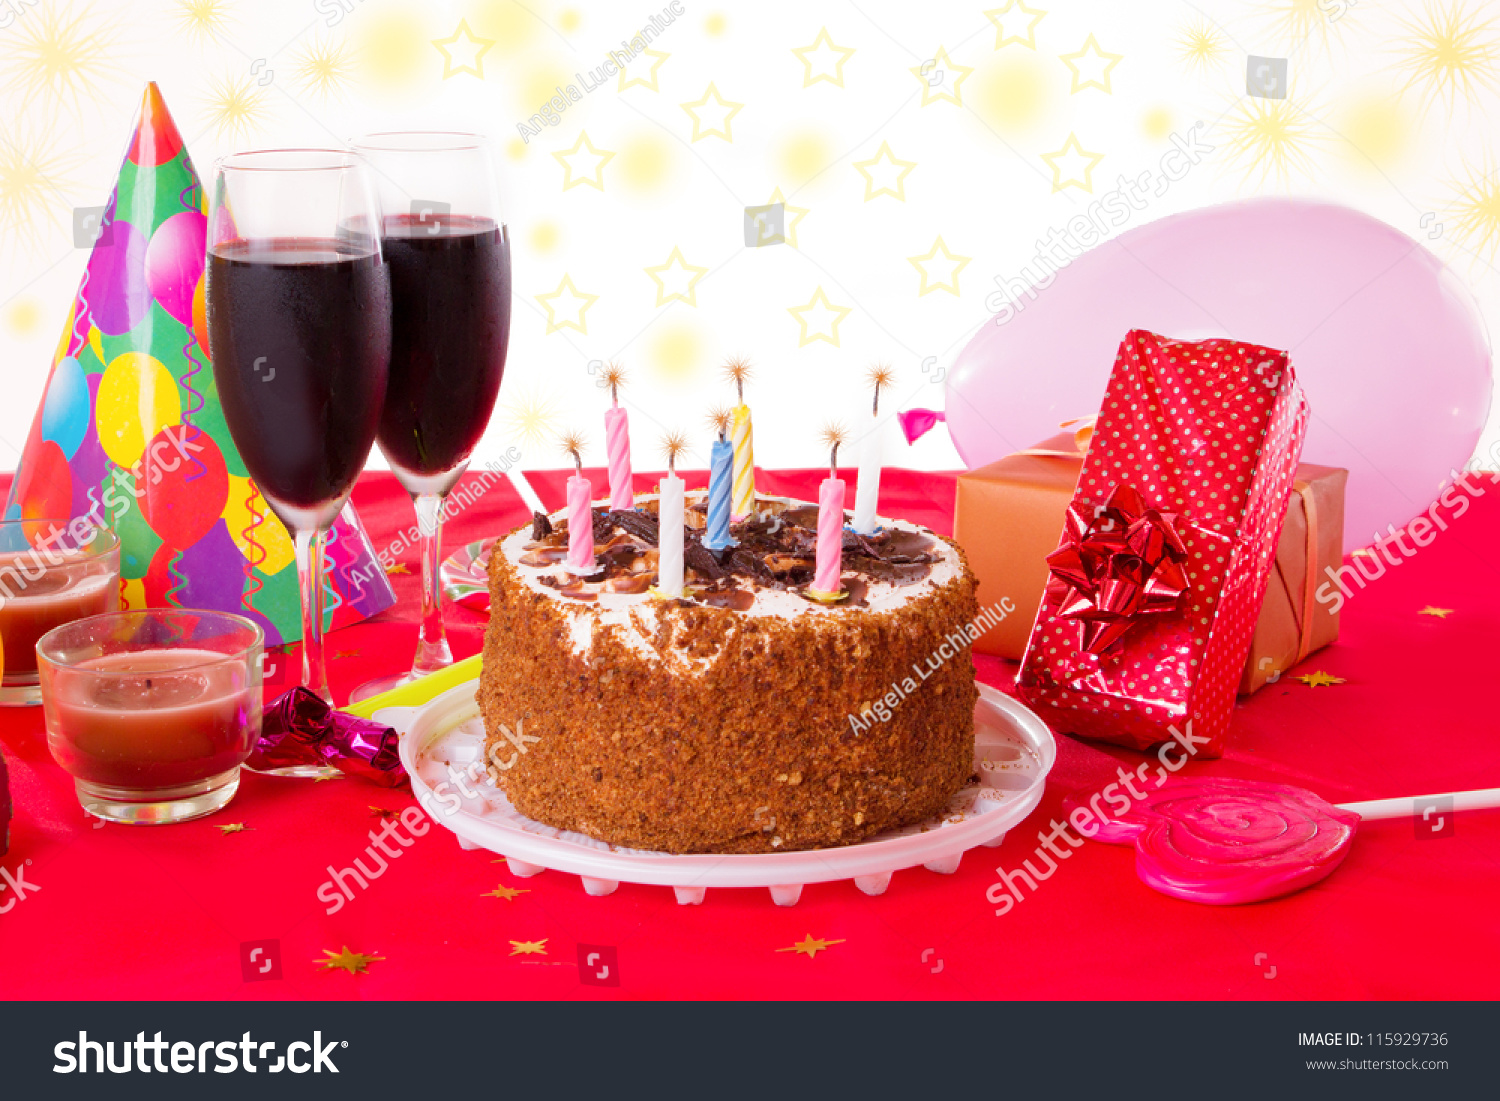 Birthday Table Cake Candles Wine Gifts Stock Photo Edit Now